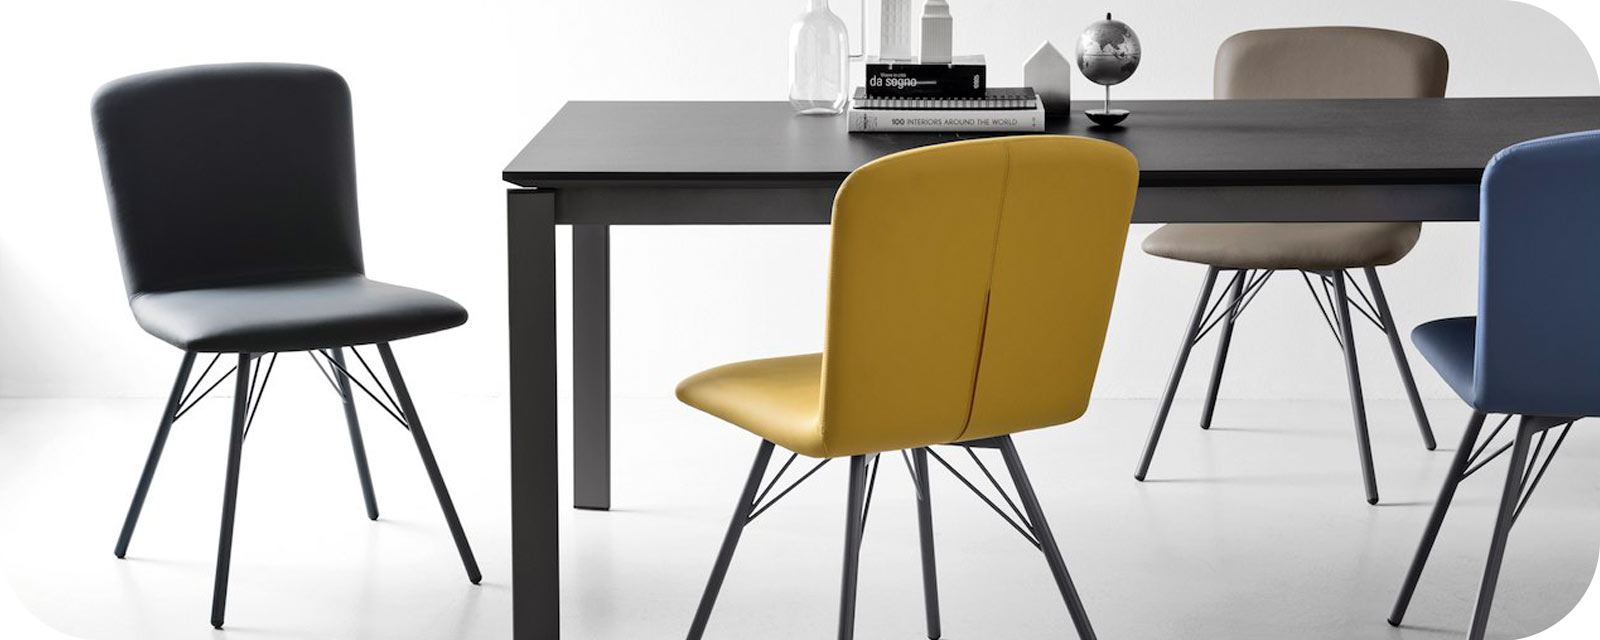 Sedia Calligaris Alchemia Chairs Stackable Chairs Folding Chairs Net And Feel Shop Online